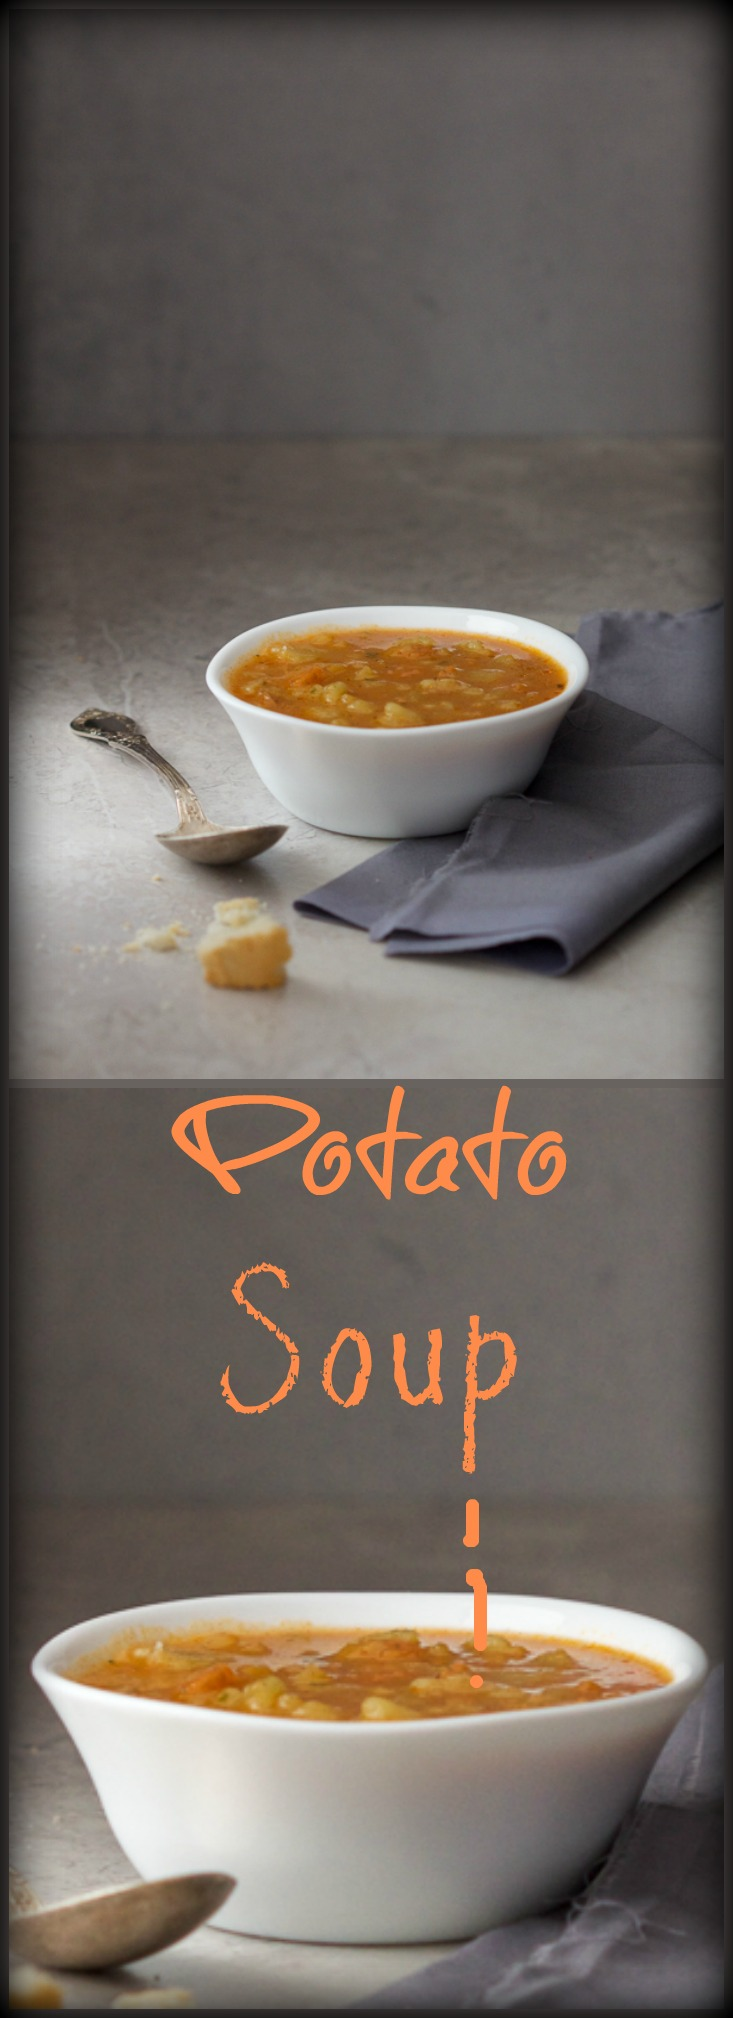 Here's a fantastic potato soup (krompir supa) recipe! This one is so rich and thick, it can easily become a meal of its own when accompanied witha big chunk of bread.